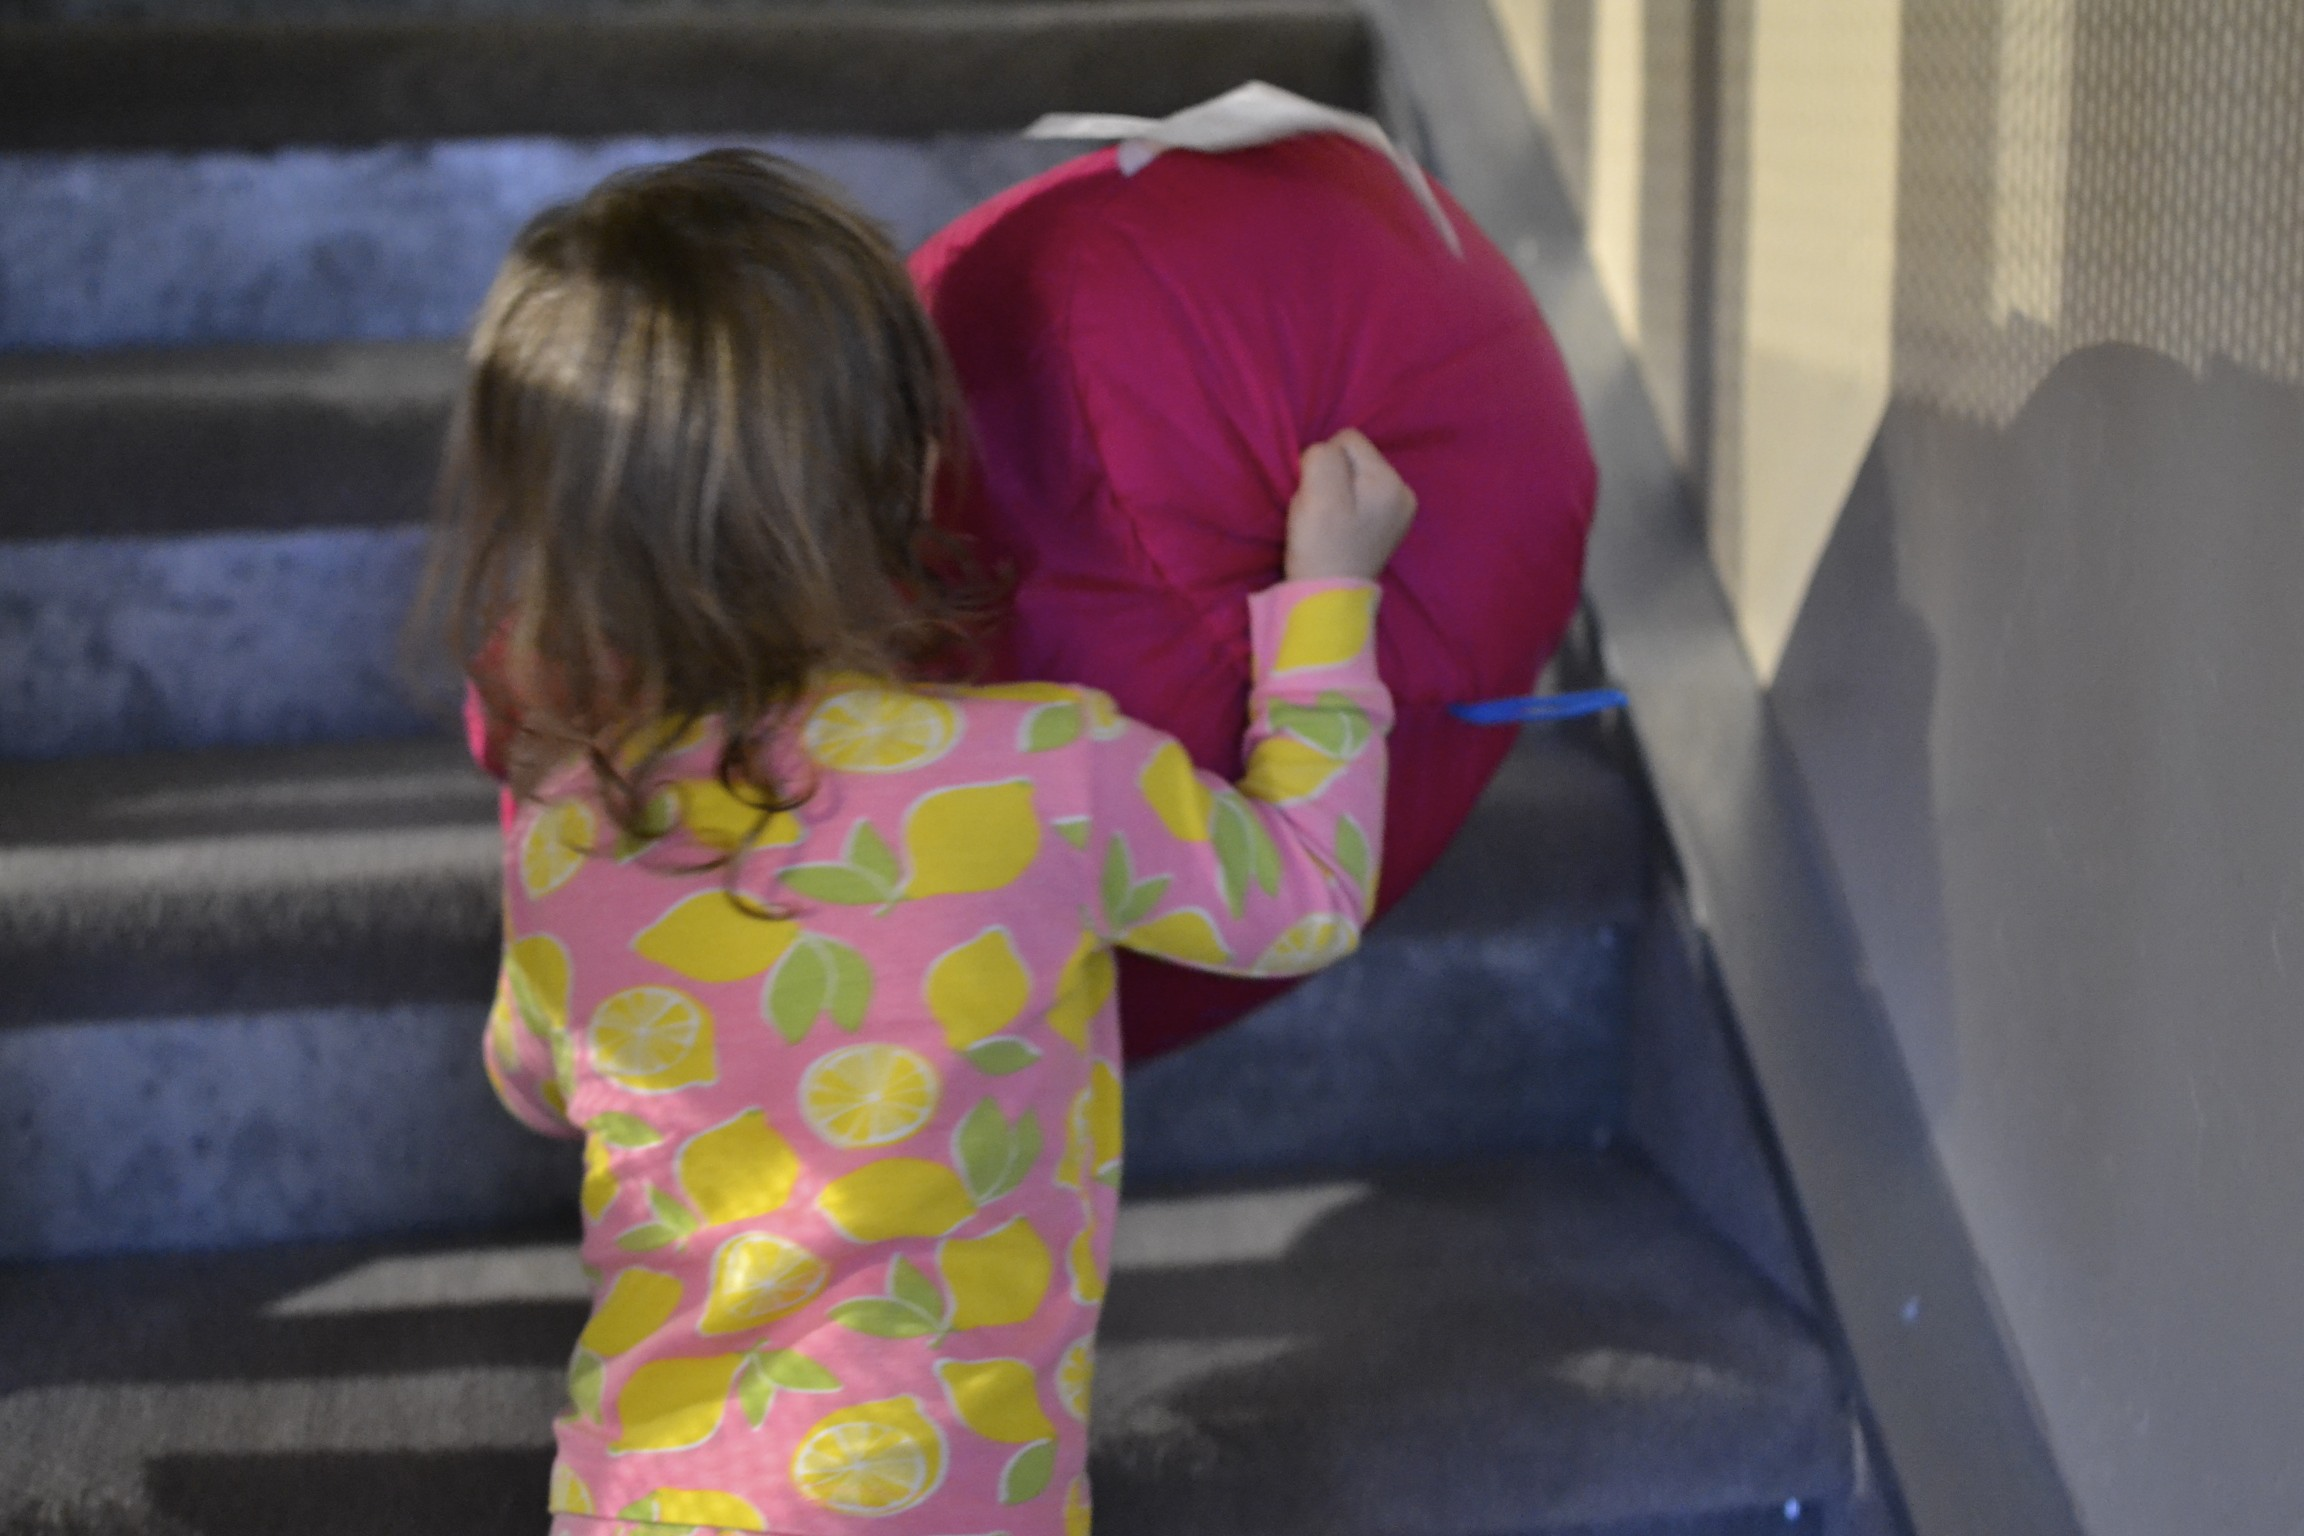 helping carry her new bag up the stairs